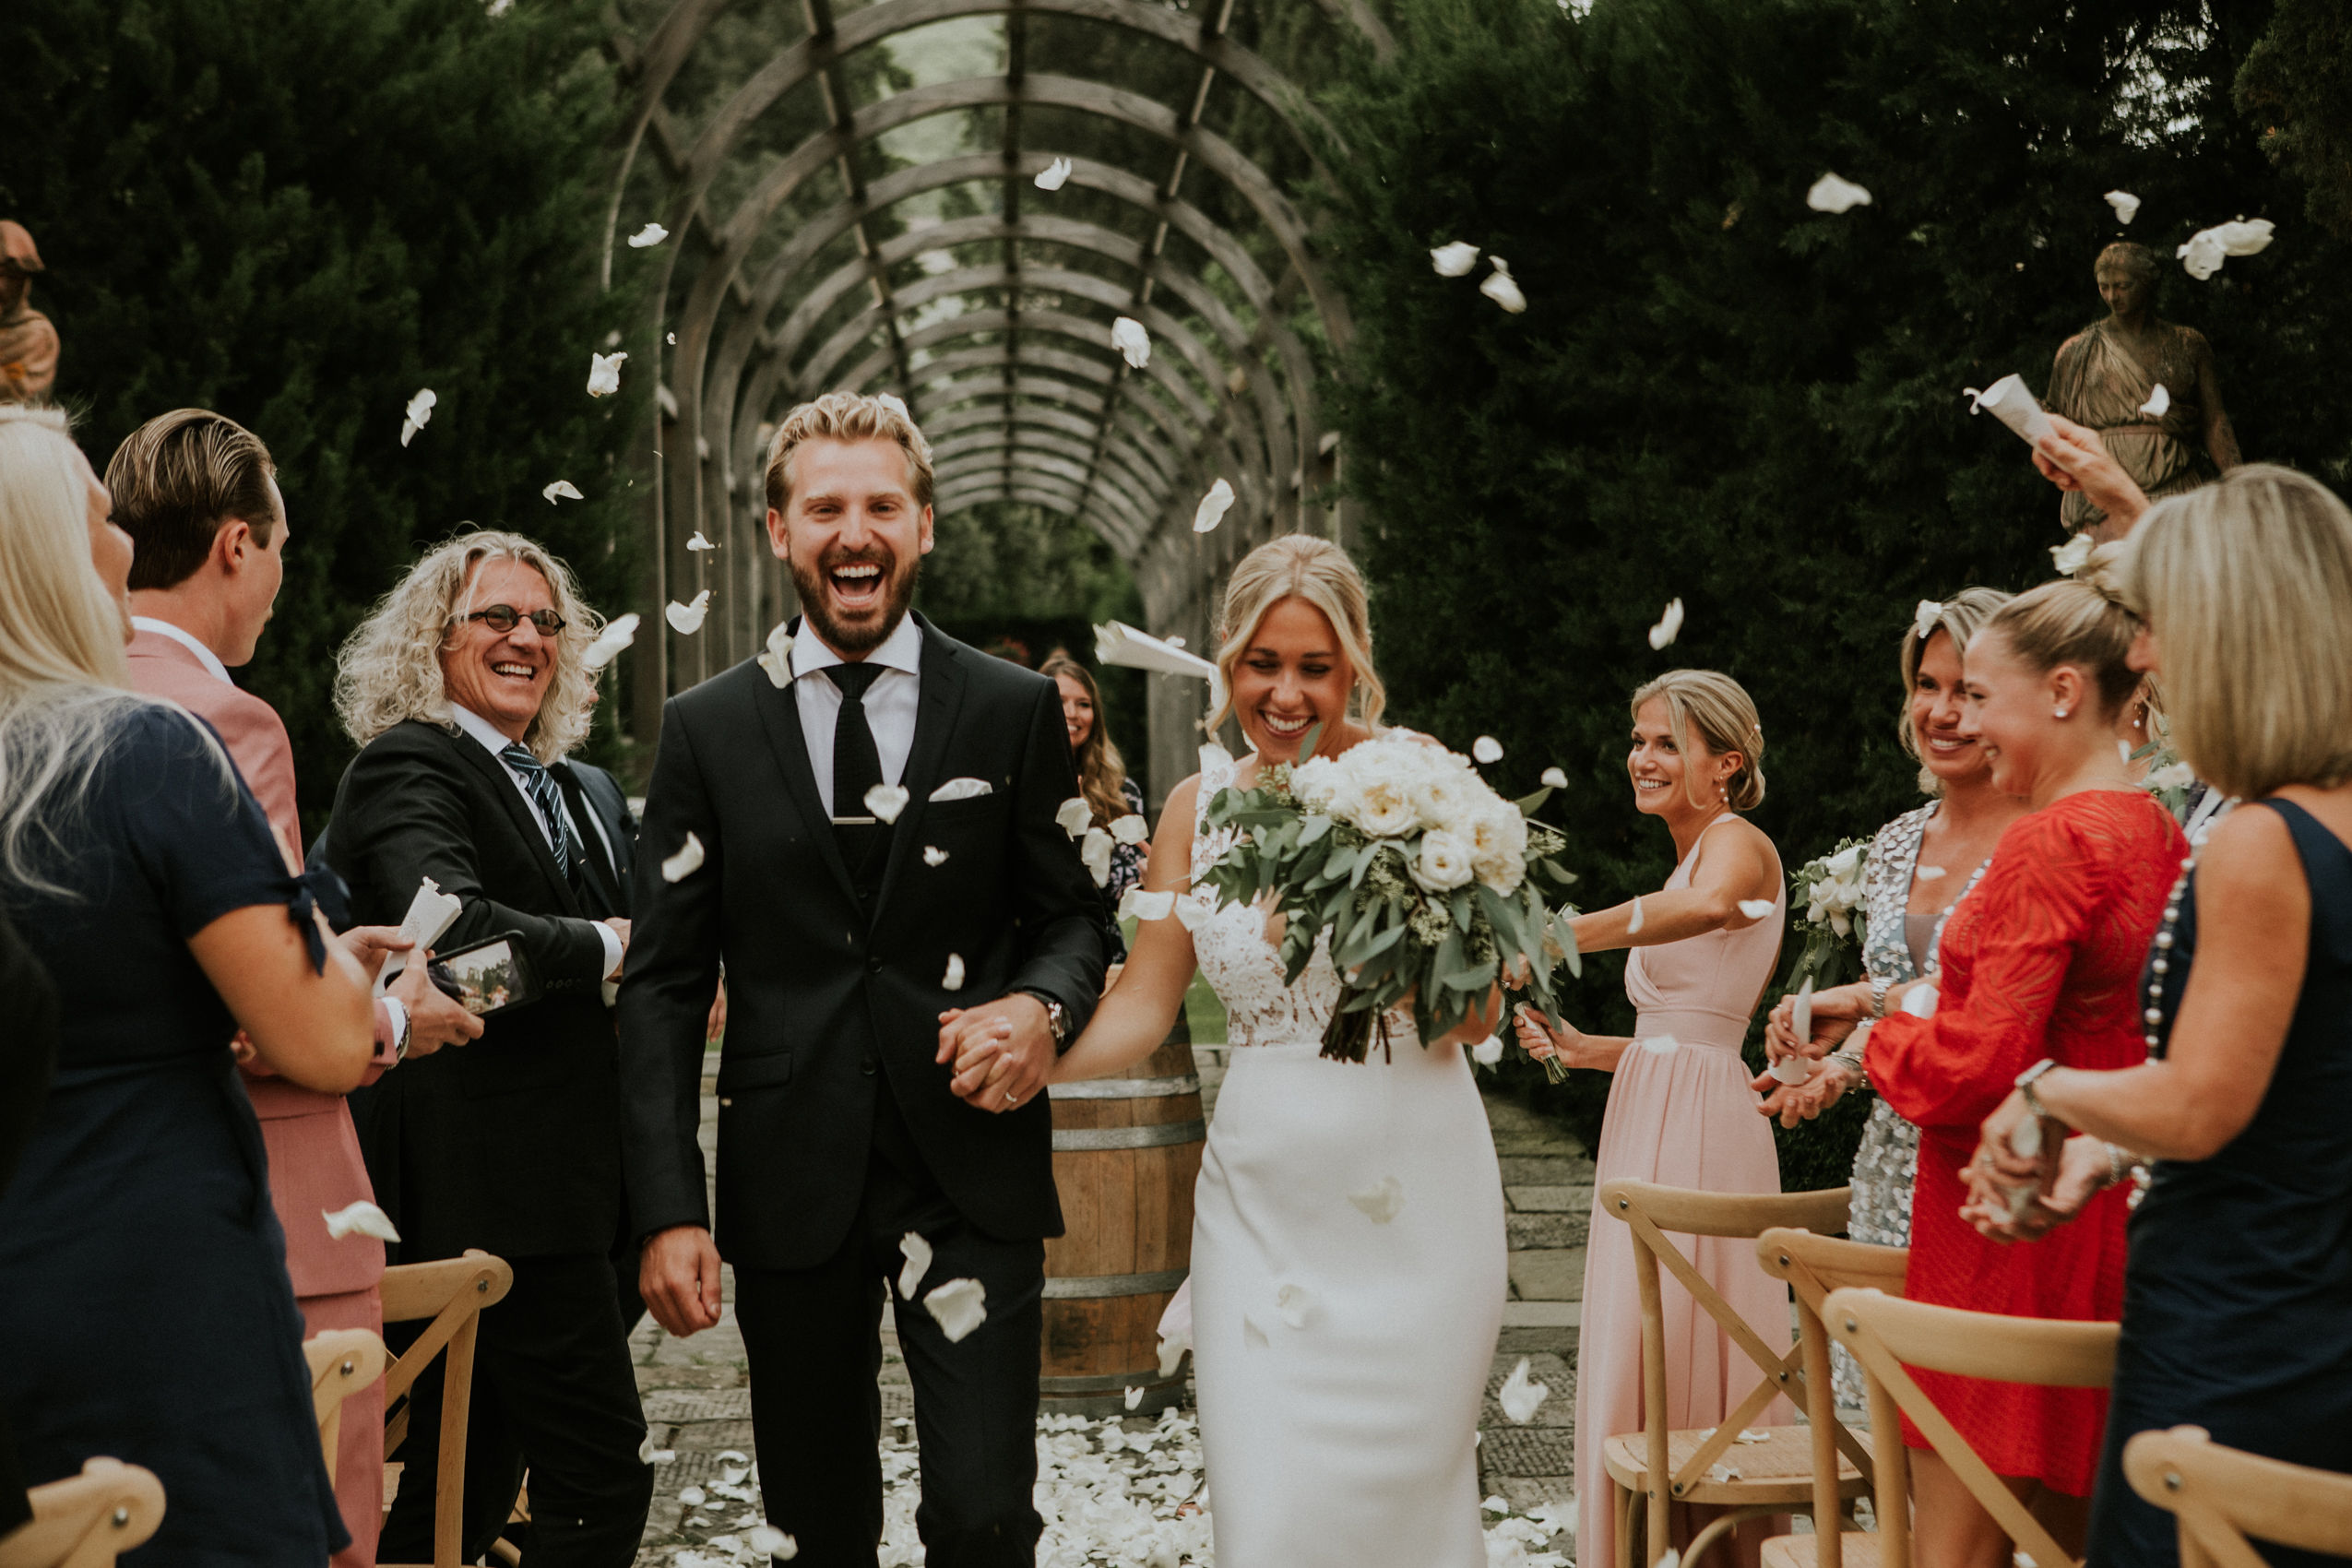 IS A MICRO WEDDING A GOOD OPTION FOR ME?